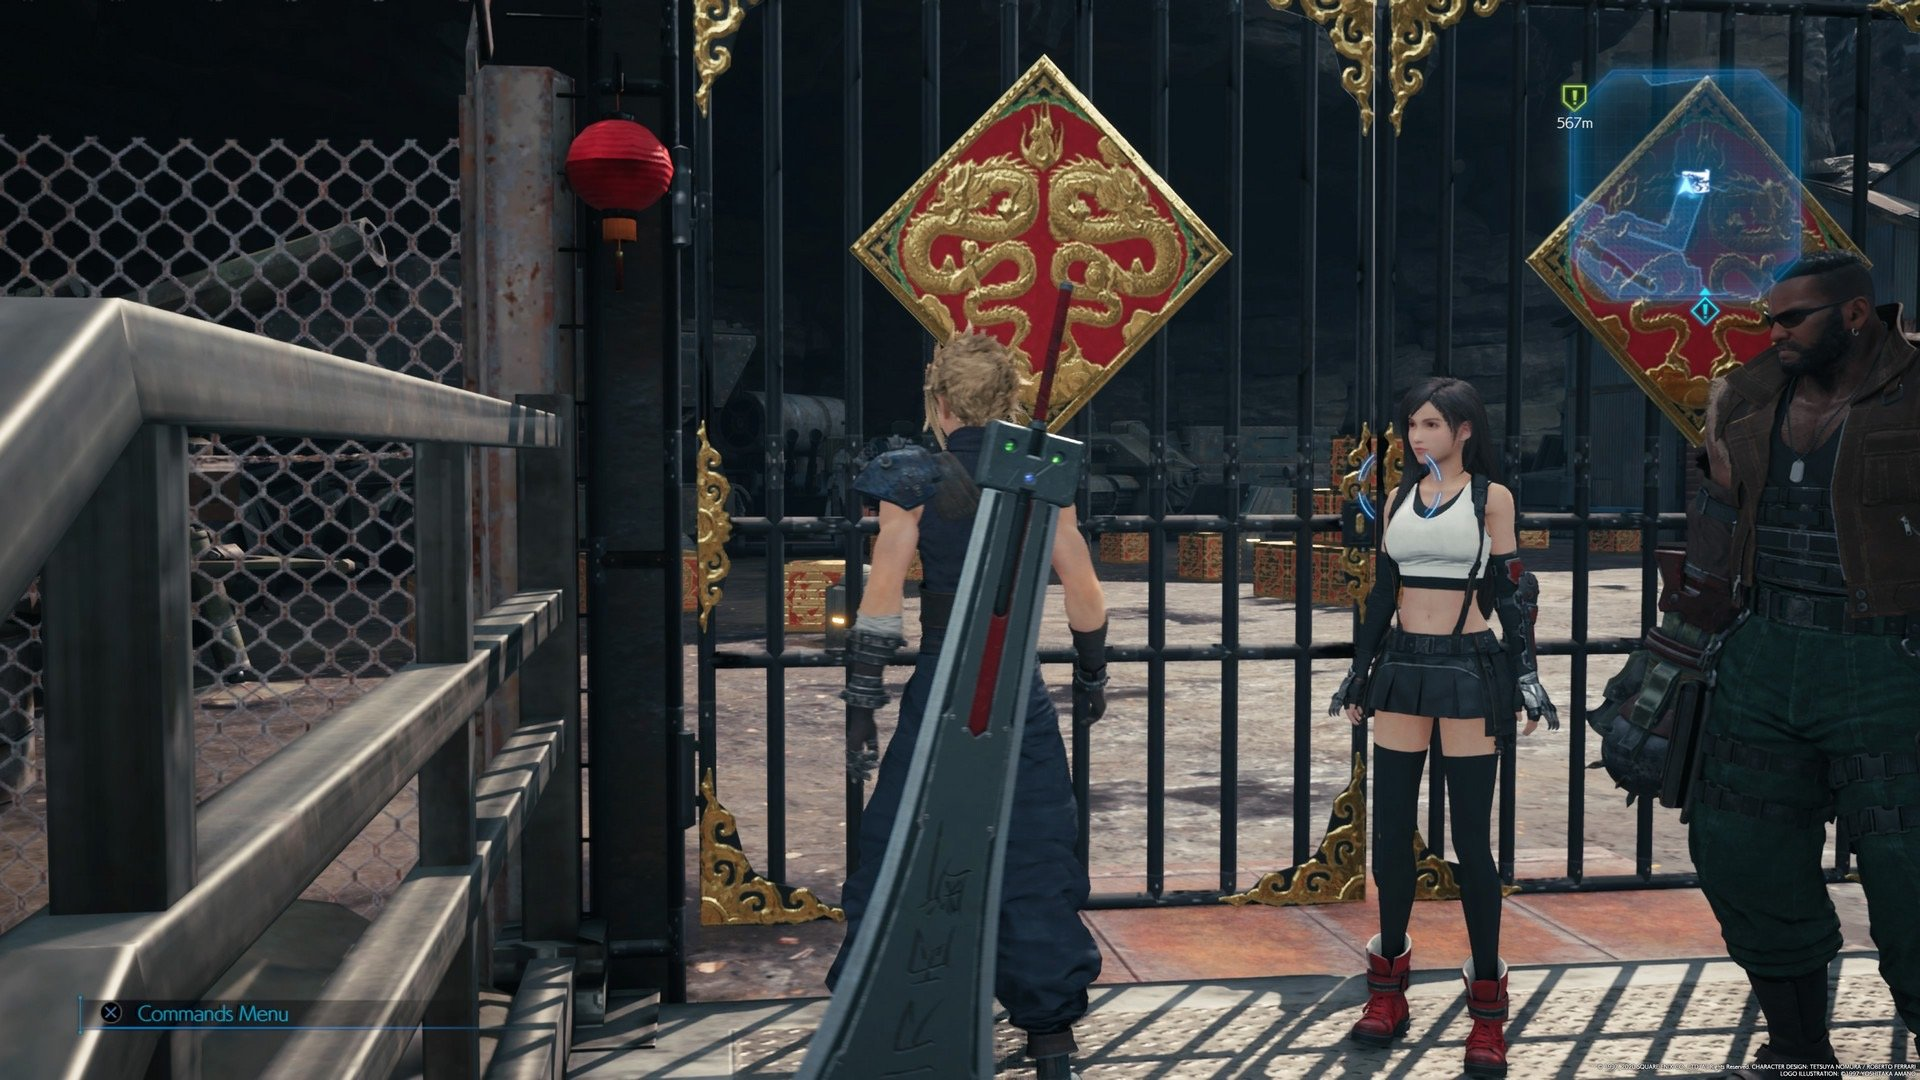 Final Fantasy VII Remake: How to unlock the mysterious red dragon gates screenshot